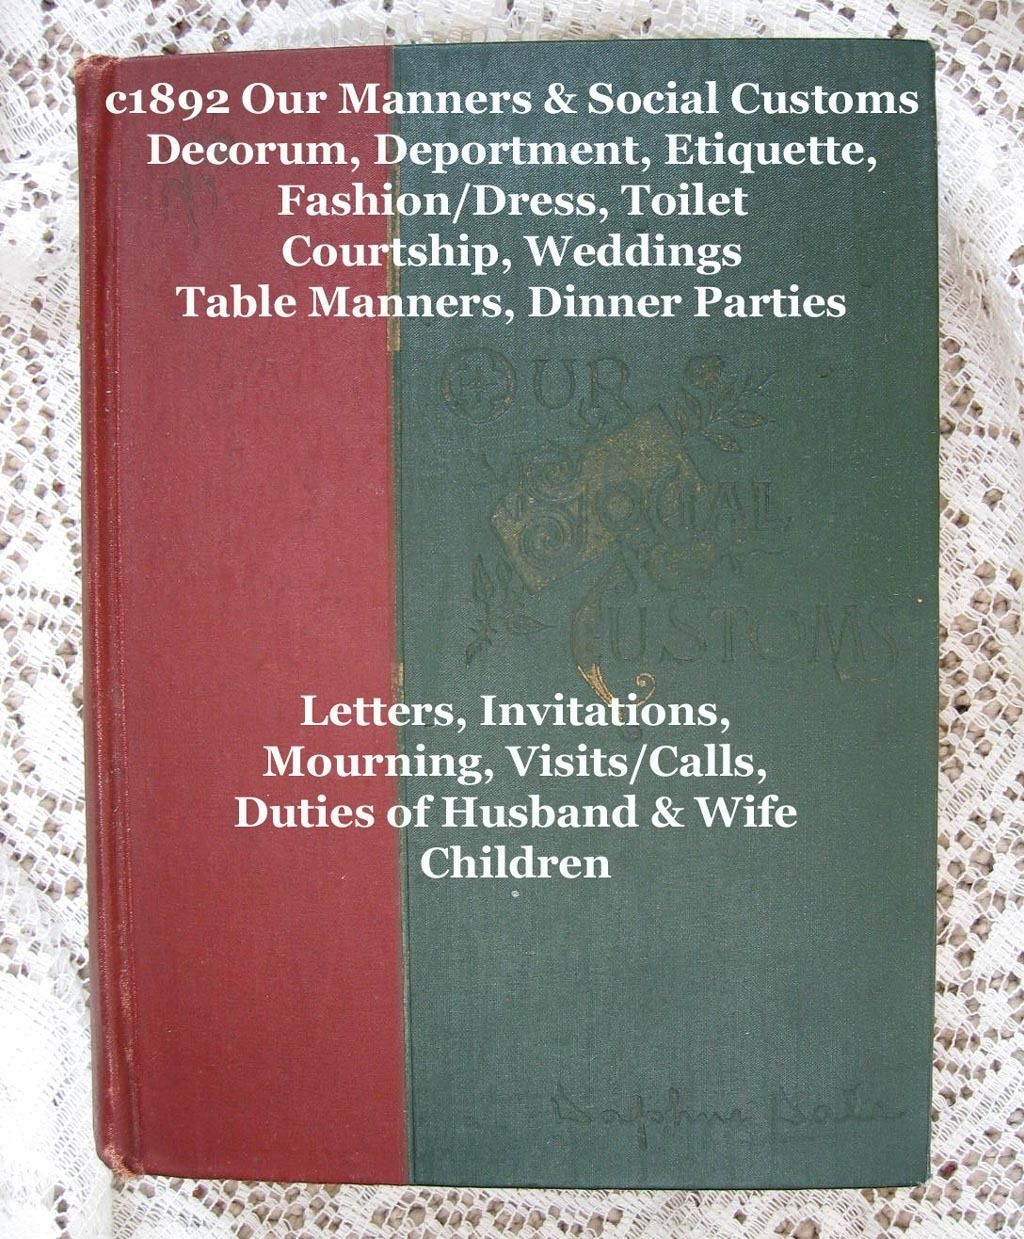 1892 Victorian Etiquette Our Social Customs Book by Daphne Dale Toilet Manners Courtship Dress Table Manners